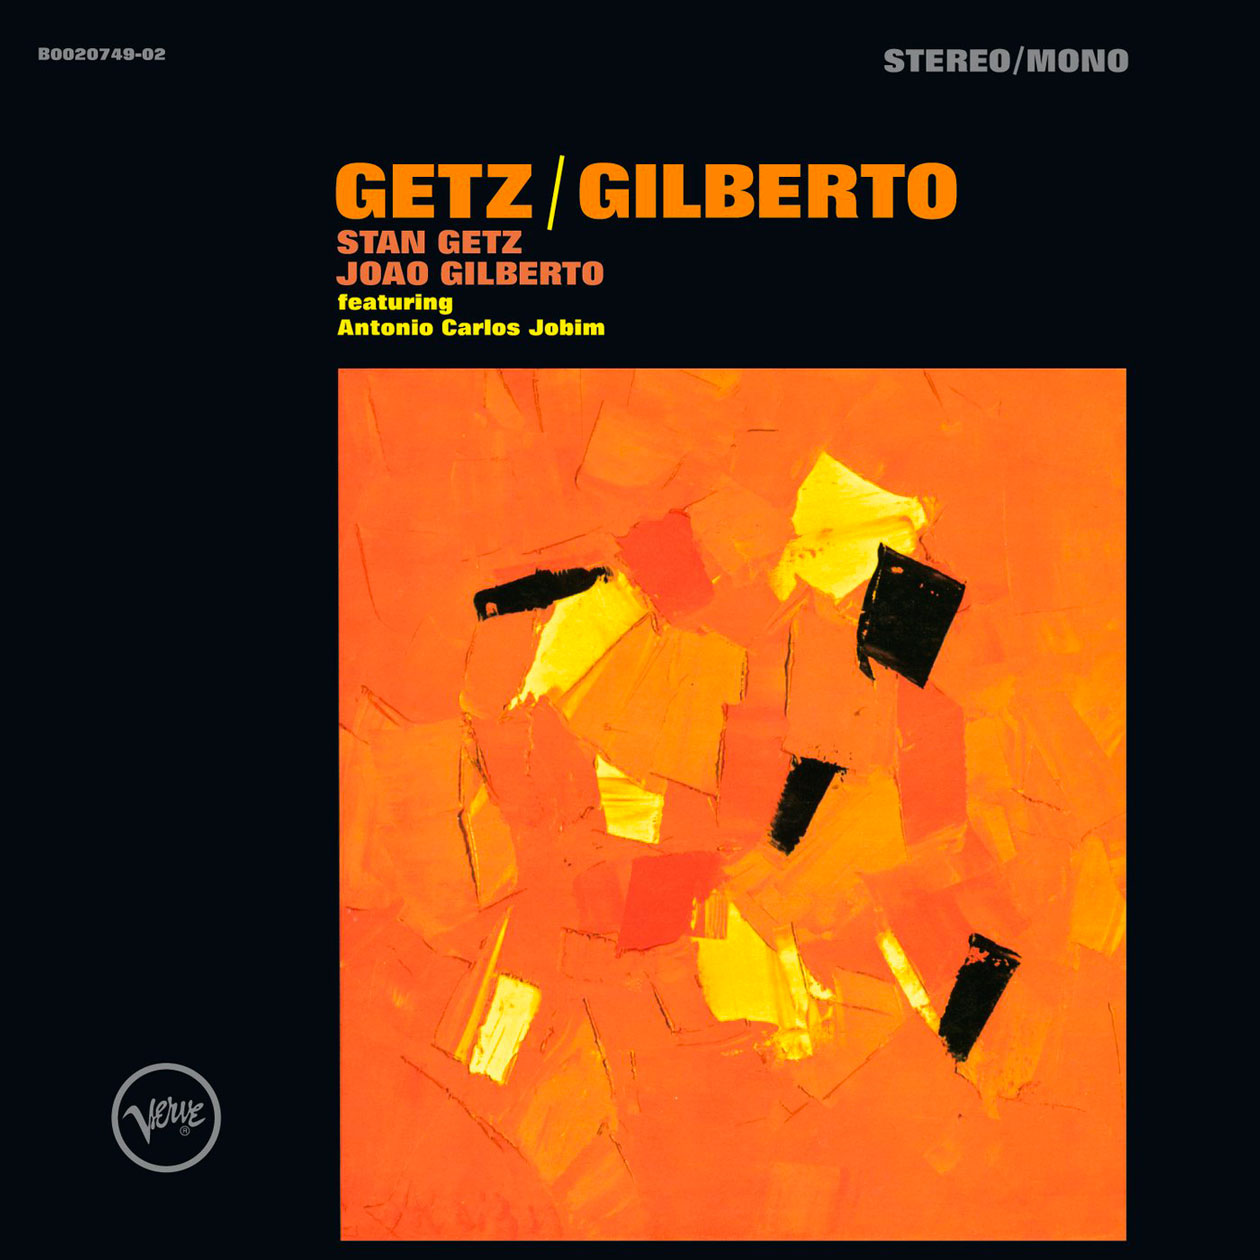 L'album incontournable : Getz/Gilberto, 1964